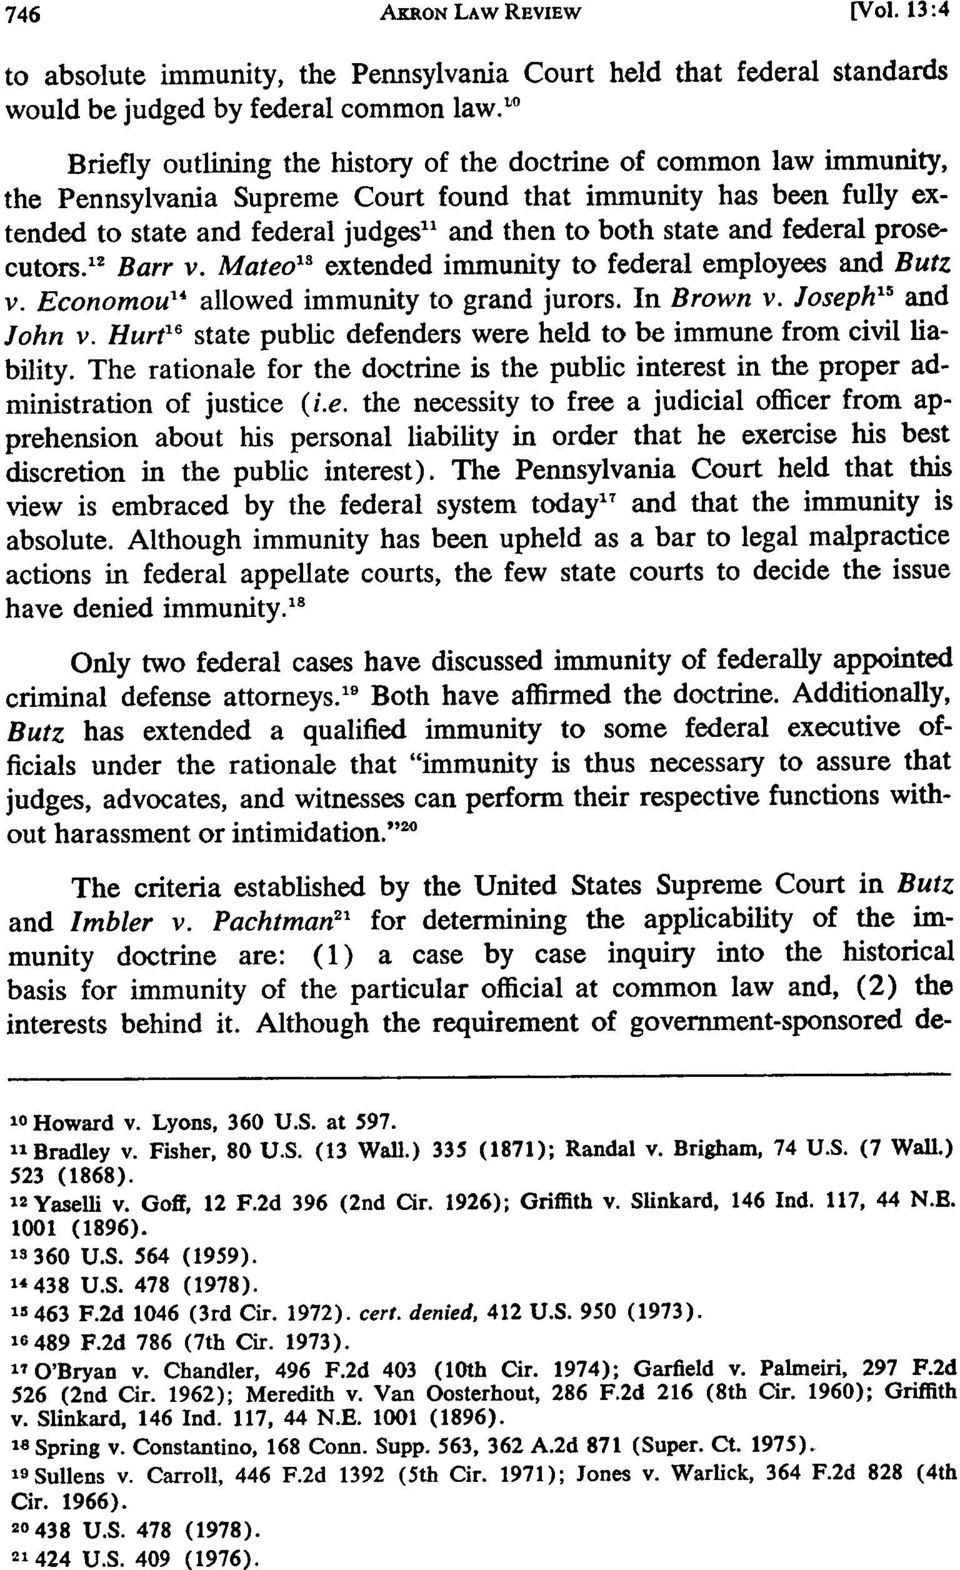 "and federal prosecutors. 12 Barr v. Mateo"" 3 extended immunity to federal employees and Butz v. Economou "" allowed immunity to grand jurors. In Brown v. Joseph 5 and John v."